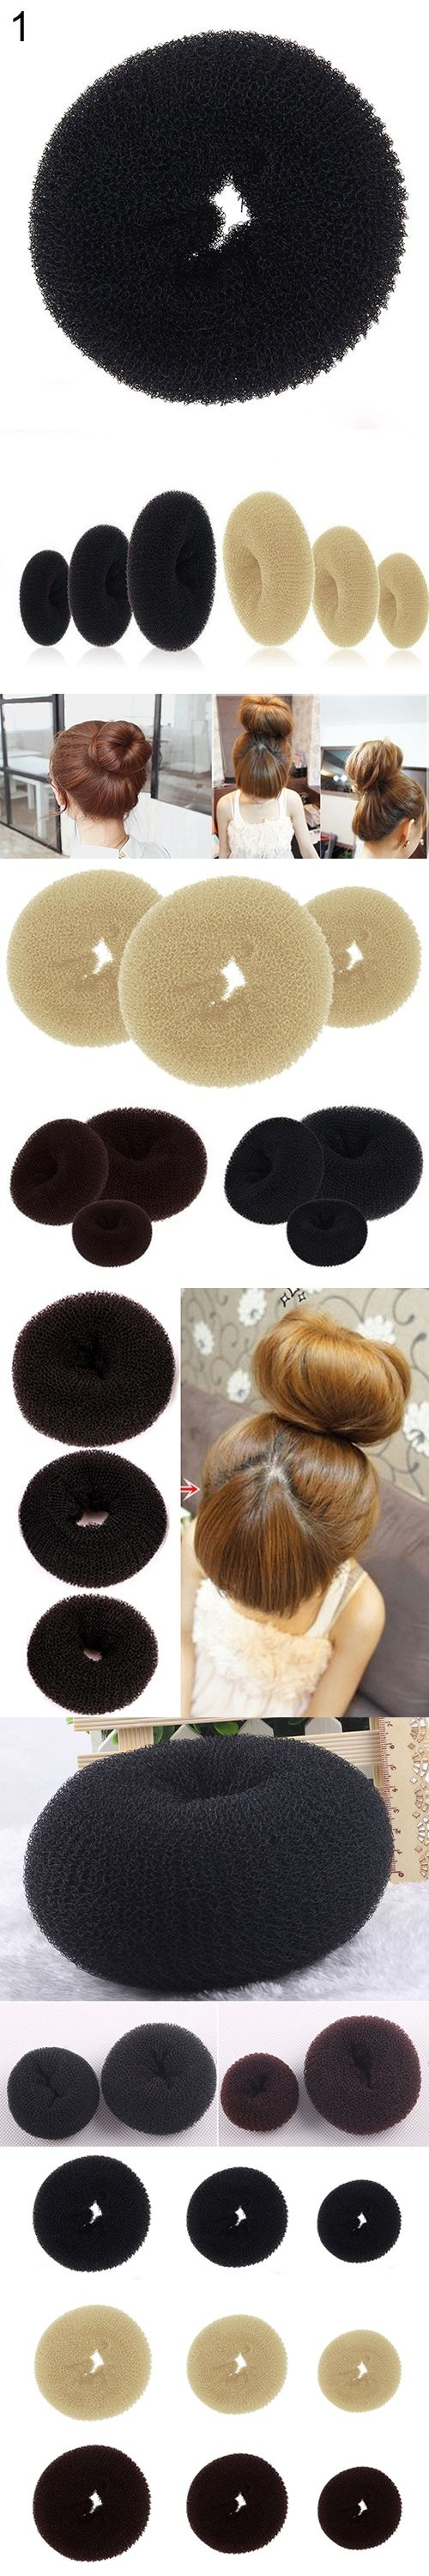 Hairstyler Best Hot Women Magic Blonde Donut Hair Ring Bun Former Shaper Hair Styler